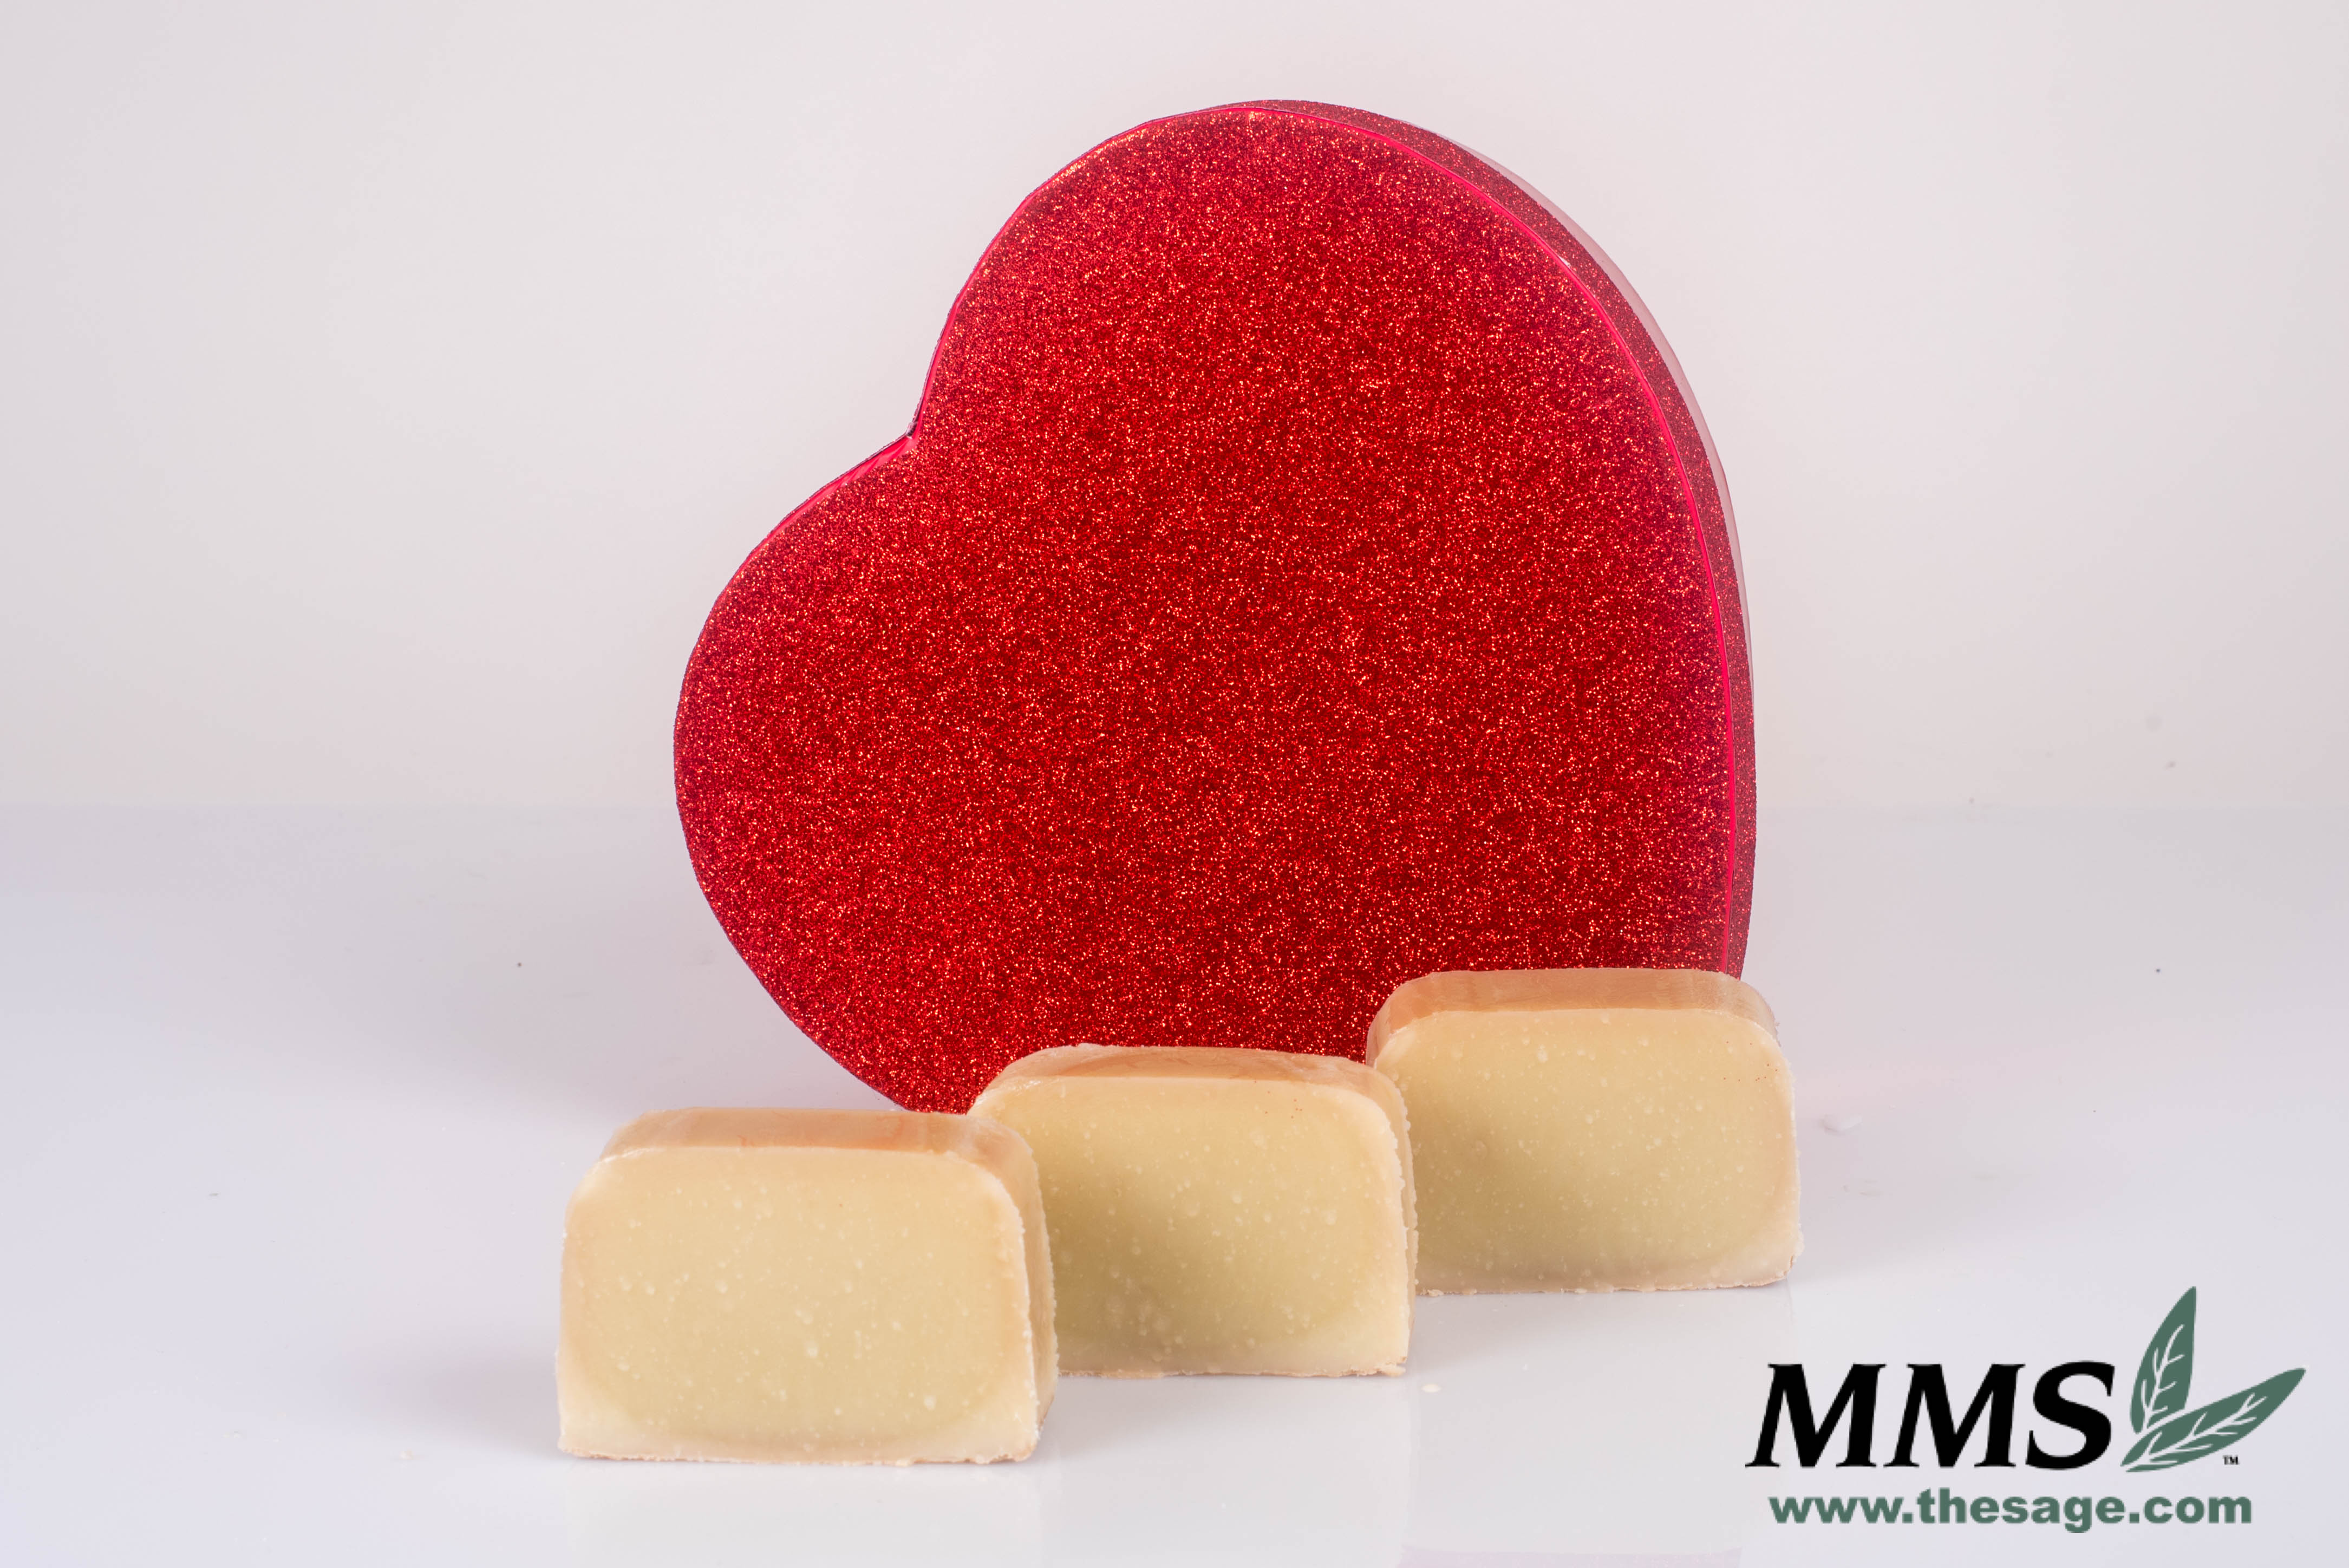 The Sweet Chocolate Mousse Soap right after cutting.